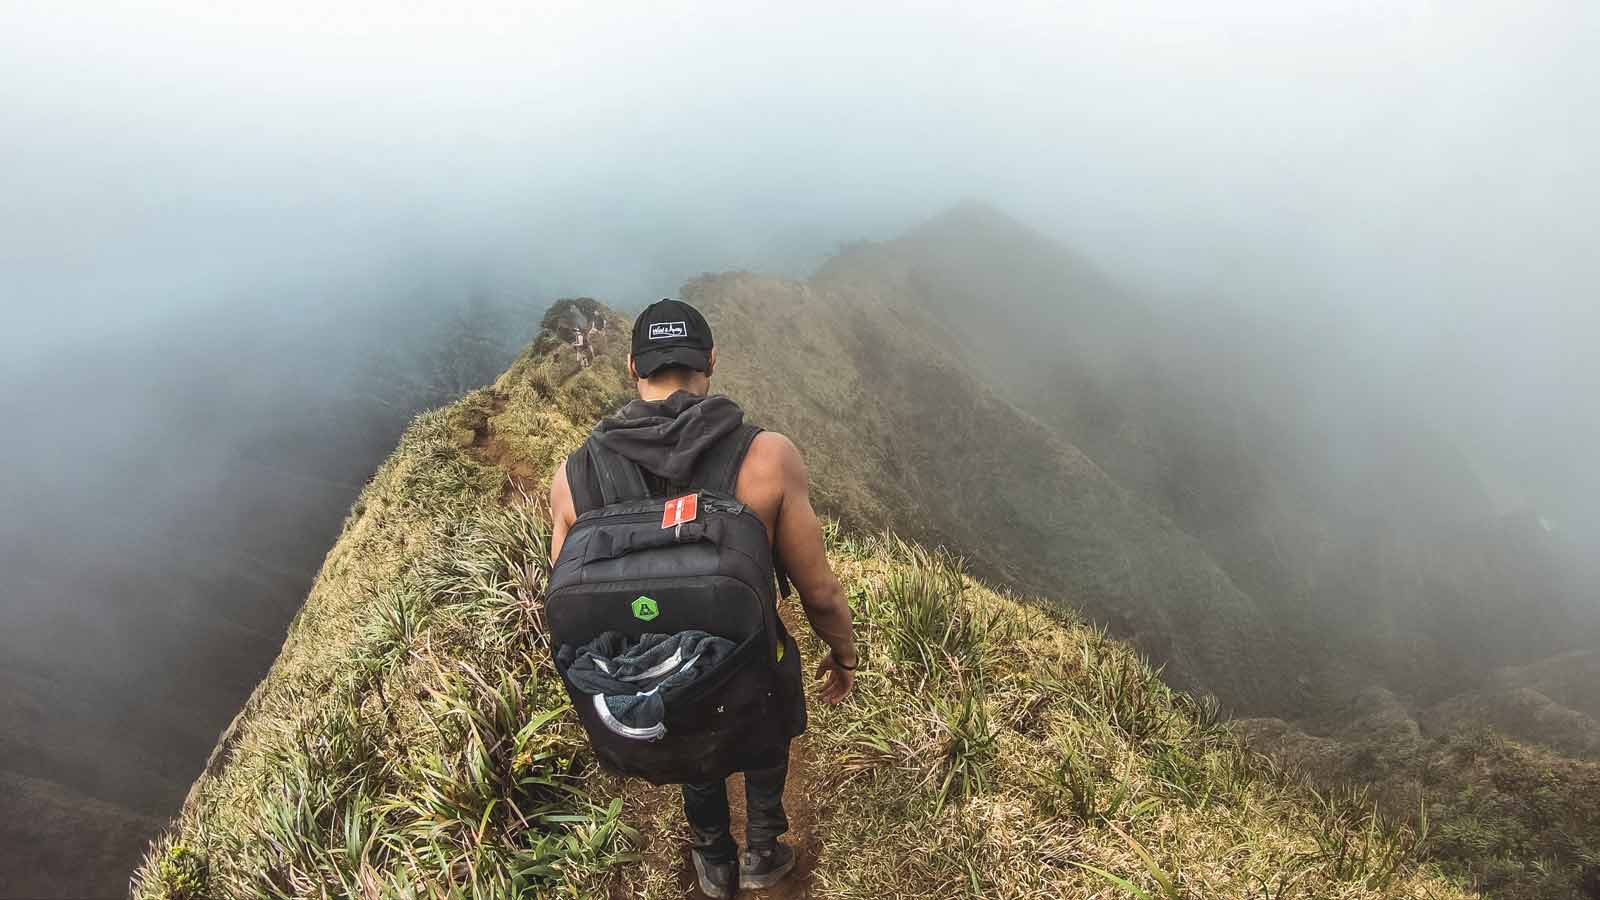 Haiku Stairs the legal way